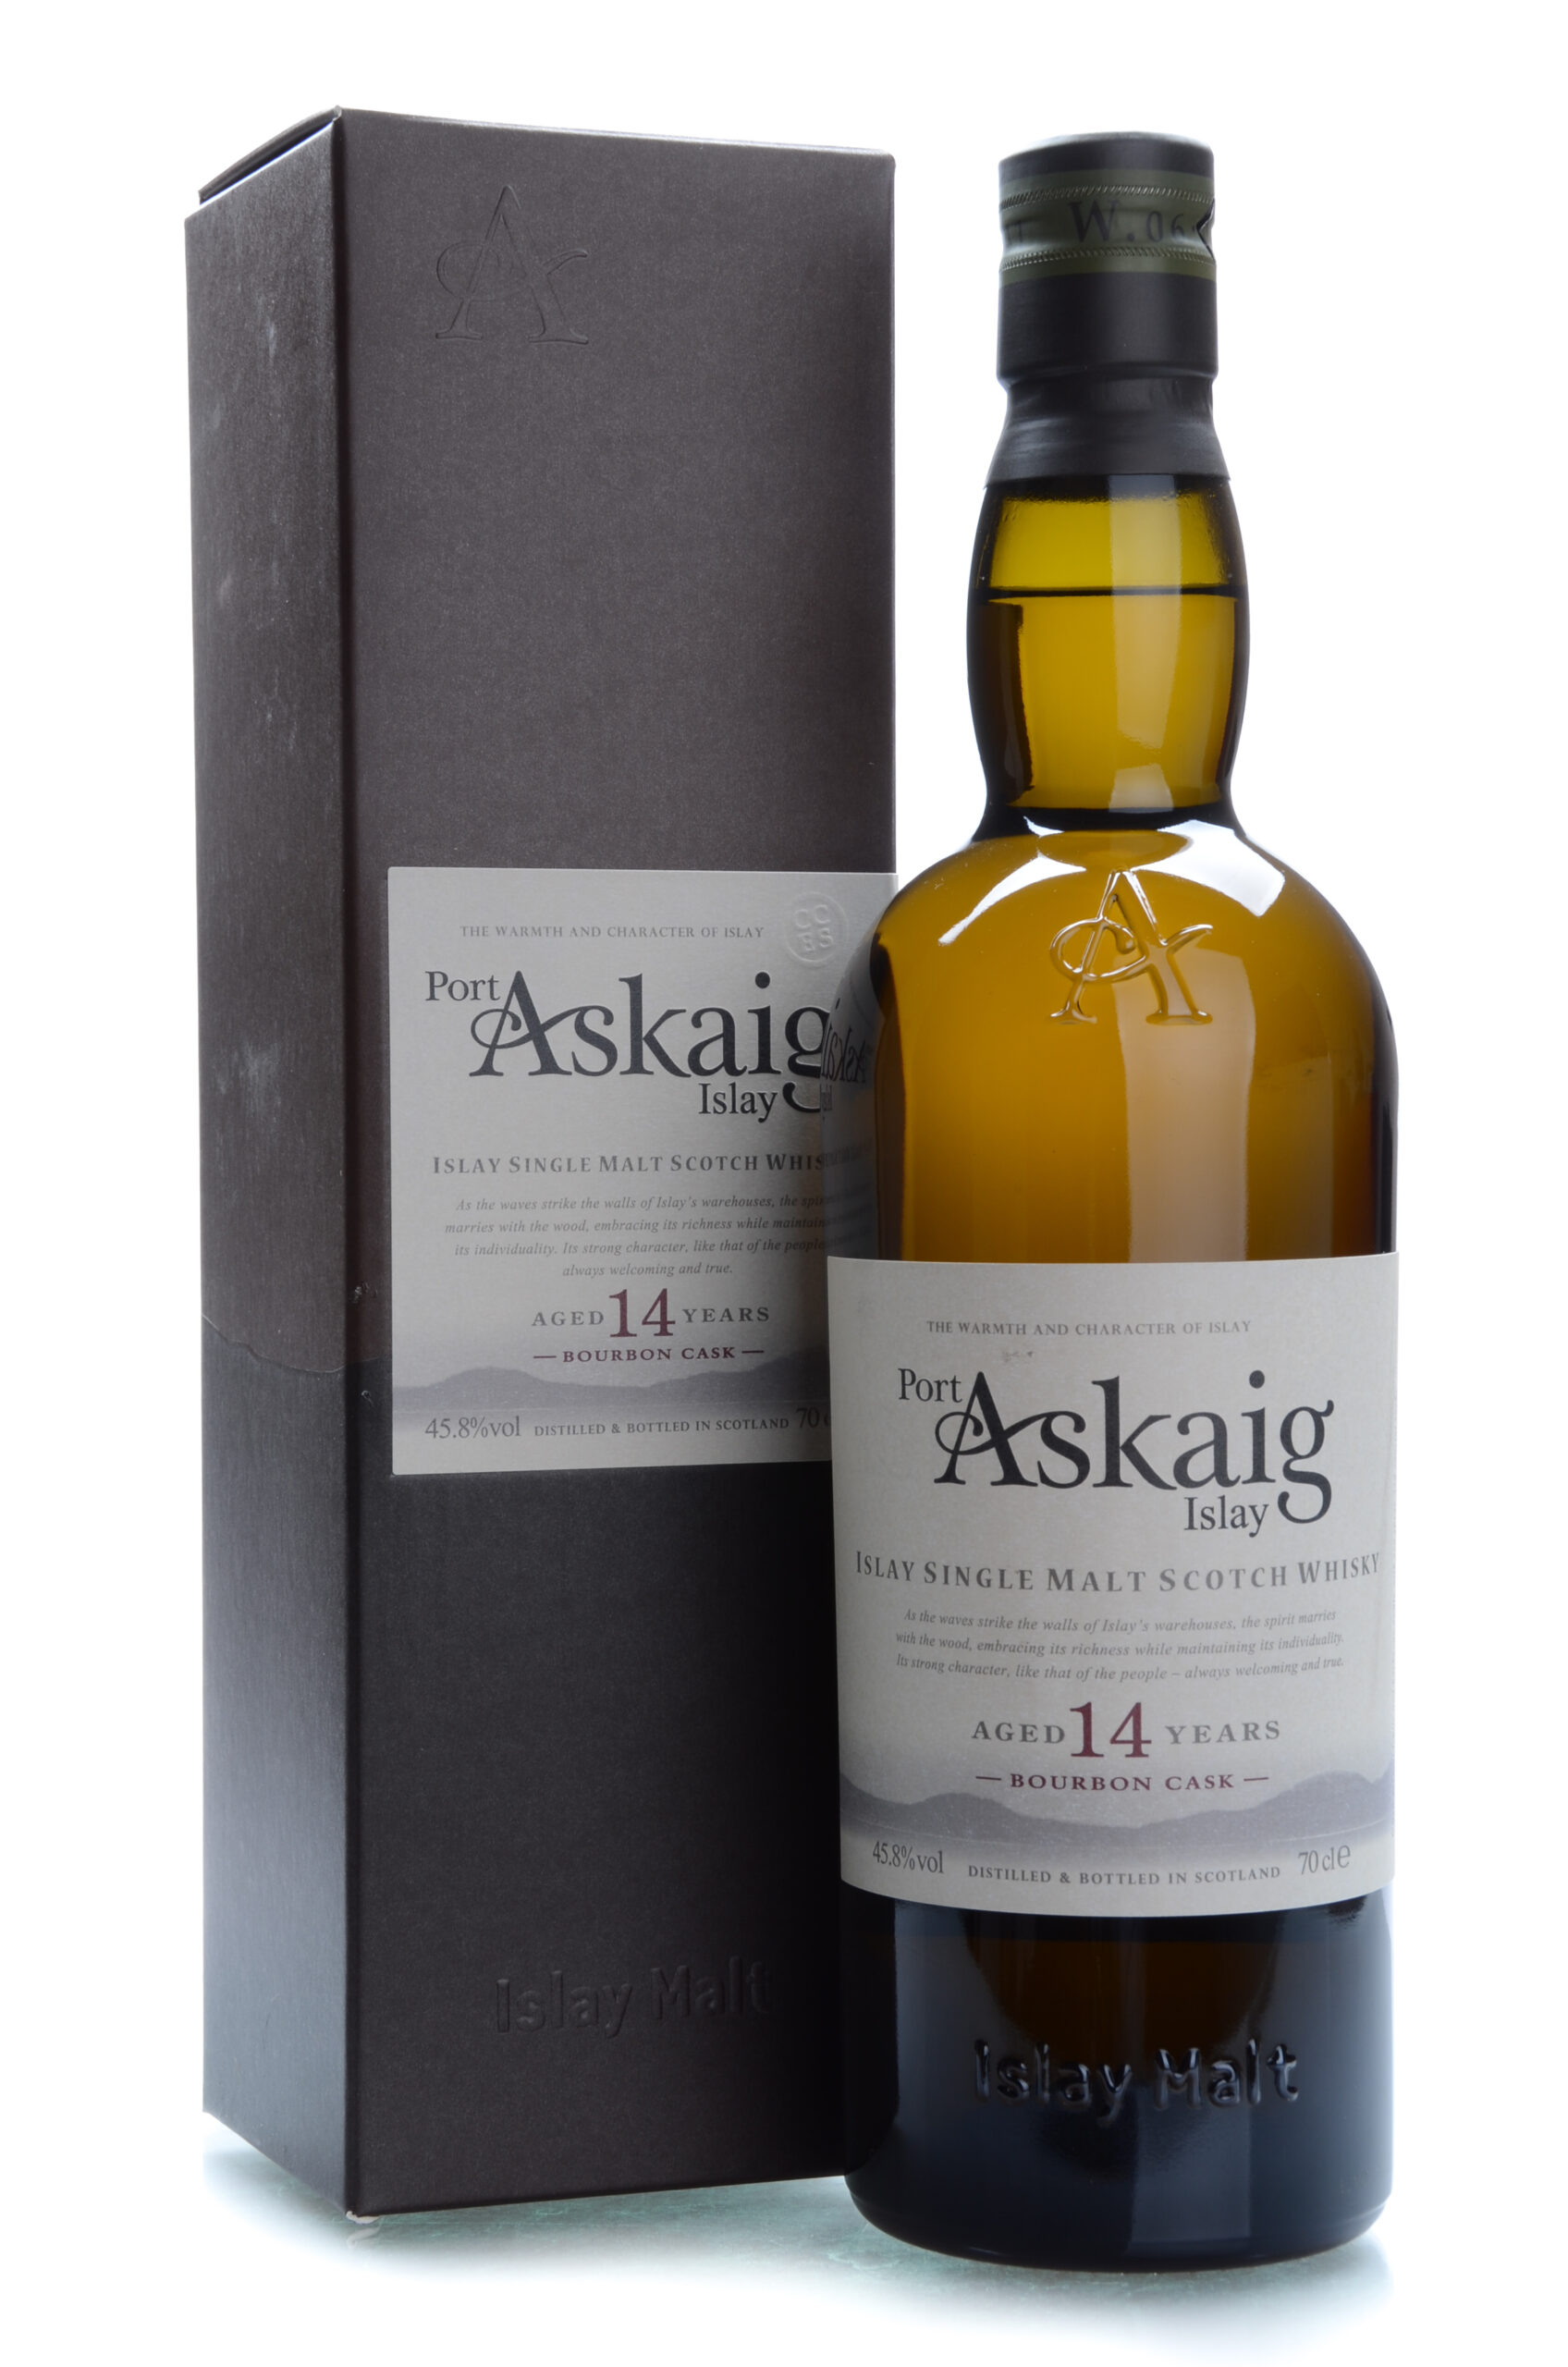 Port Askaig Bourbon cask 14 years